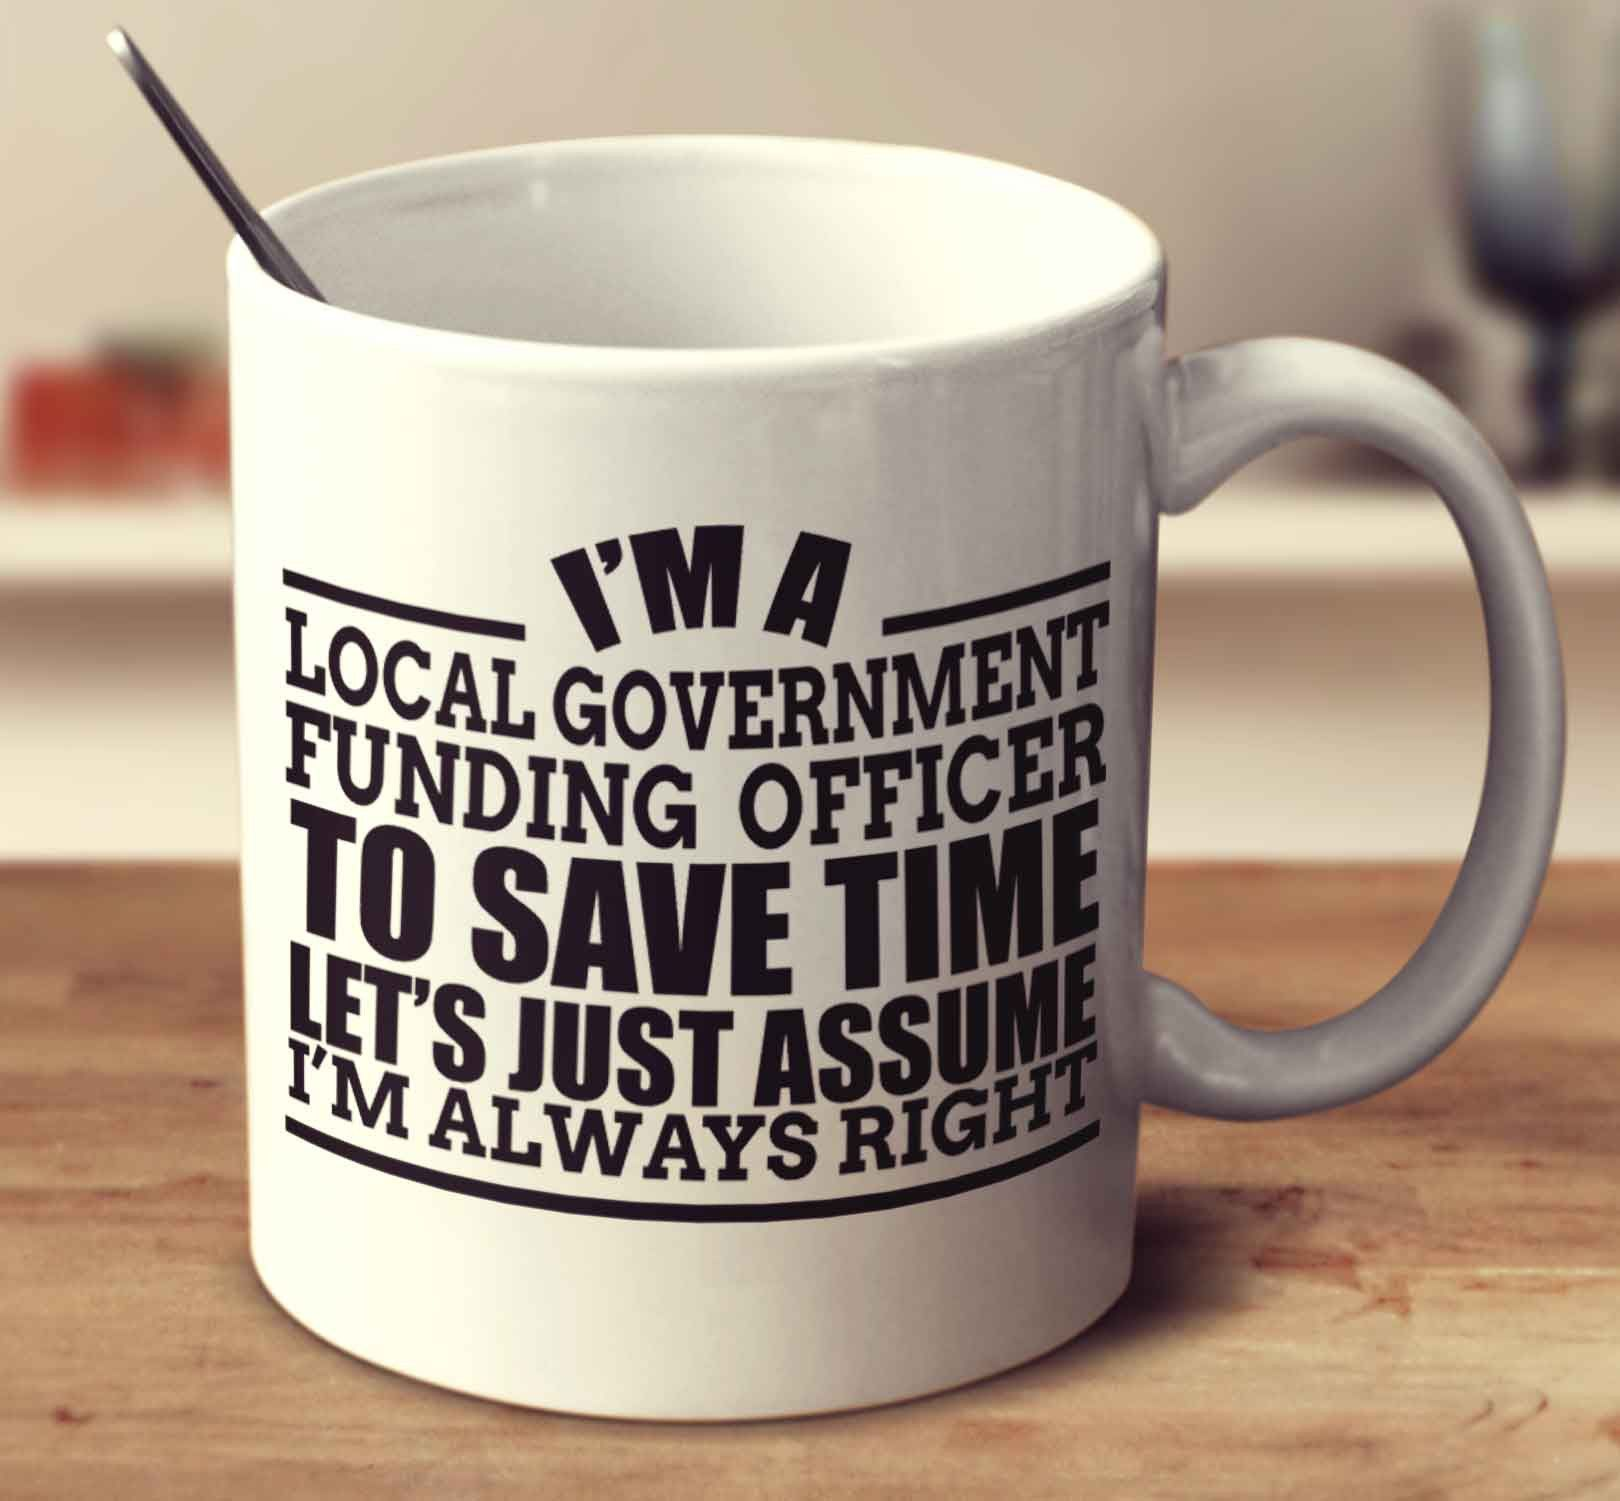 I'm A Local Government Funding Officer To Save Time Let's Just Assume I'm Always Right